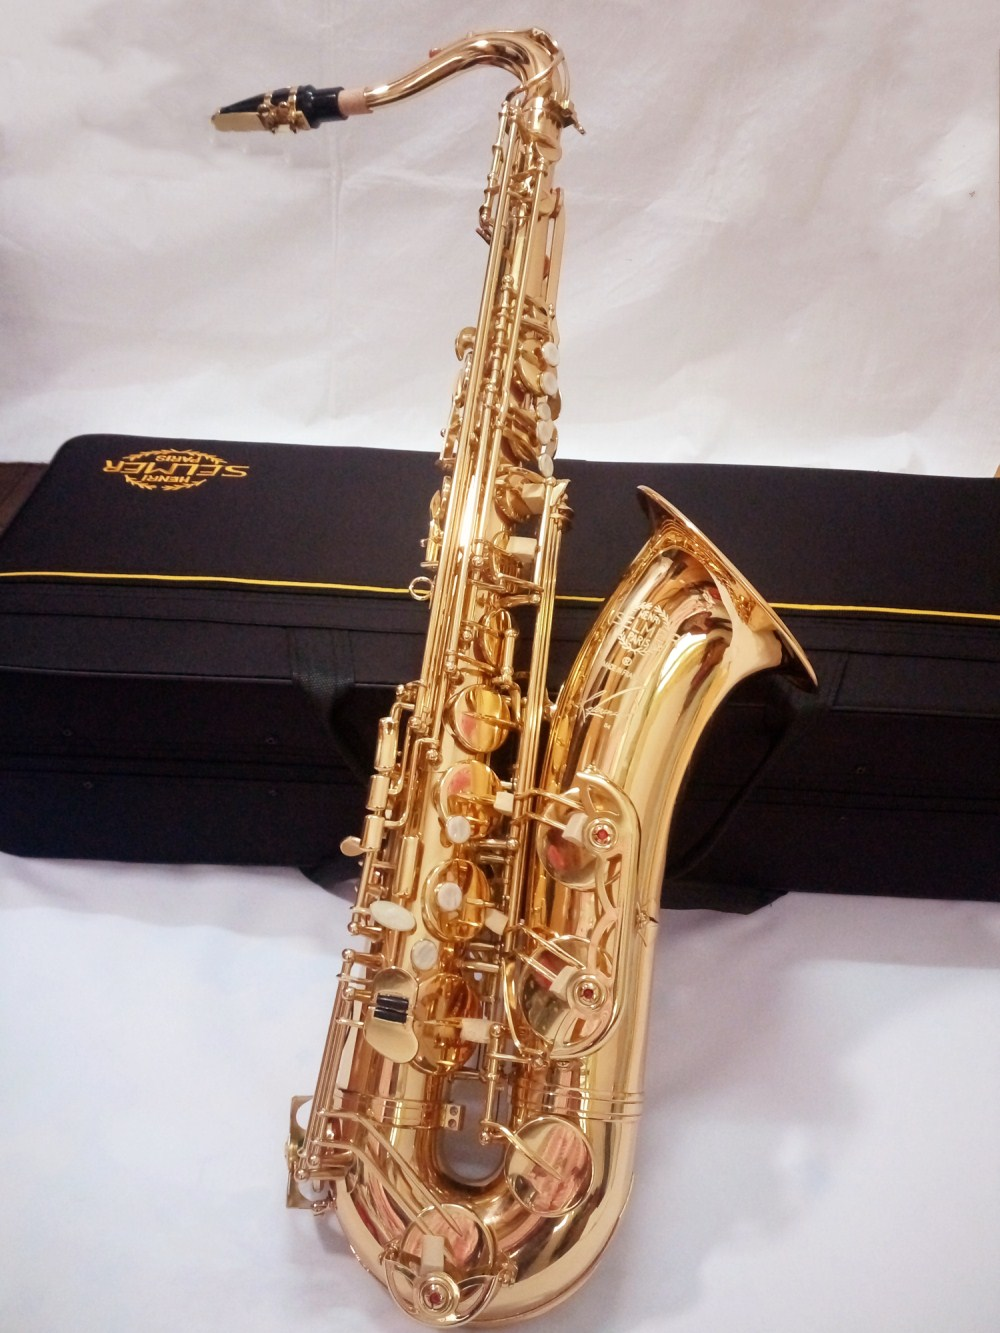 France Selmer 54 B flat Tenor saxophone high grade gold Tenor Sax music Professional brass instrument free shipping free shipping ems genuine france selmer tenor saxophone r54 professional b black sax mouthpiece with case and accessories 9